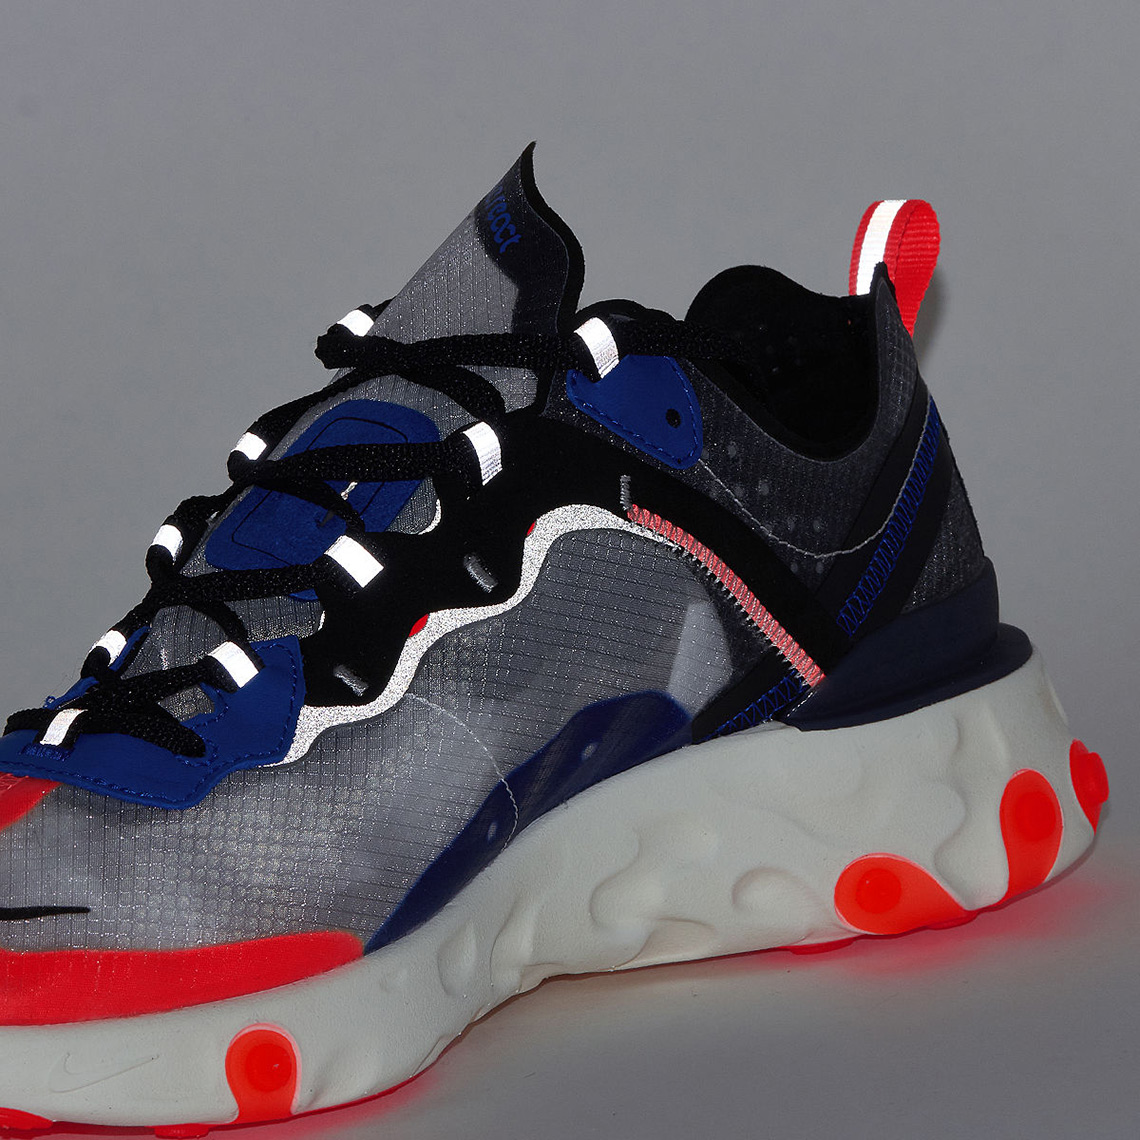 new product 9a816 39468 Nike React Element 87 Blue Orange AQ1090-004 Where To Buy ...